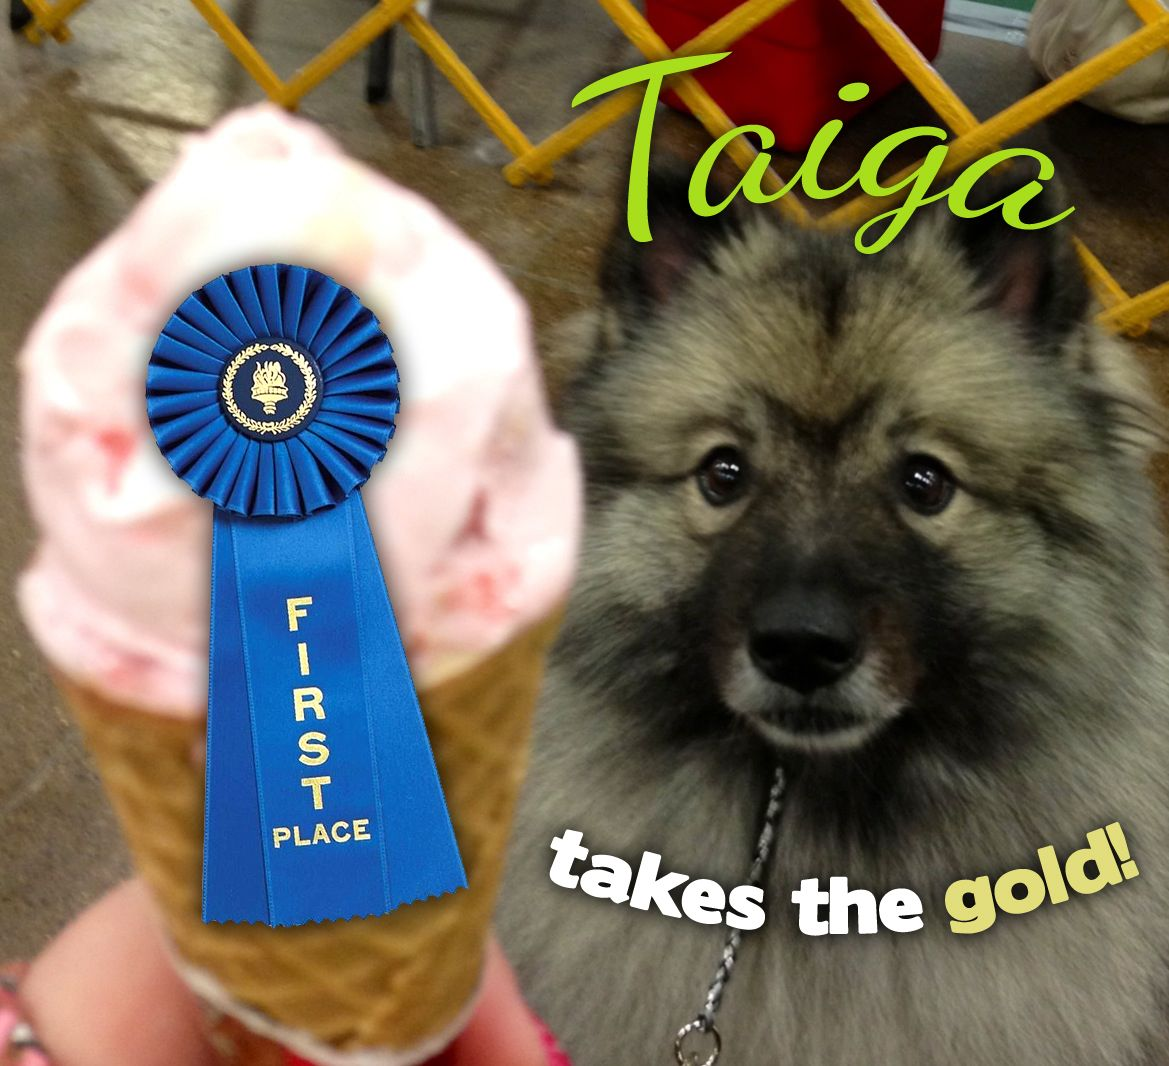 Winner of our Dog Days of Summer photo contest! Entrant